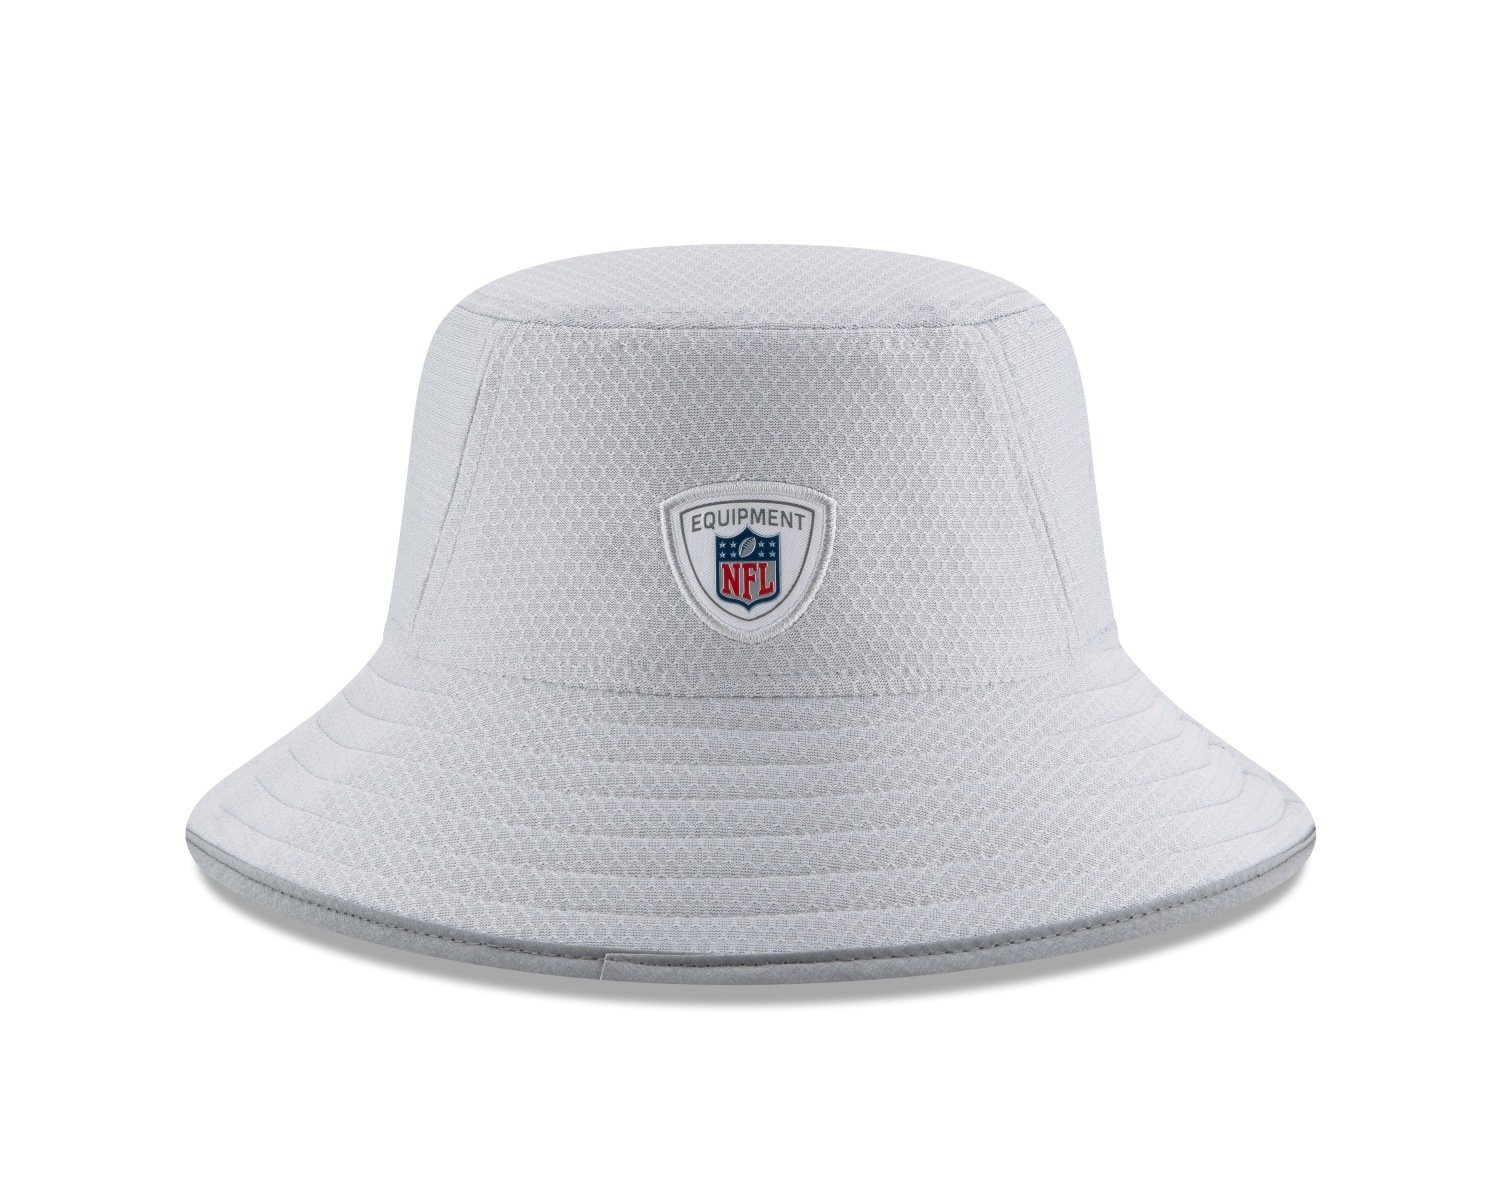 New Era Arizona Cardinals NFL 2018 Training Camp Sideline Bucket Hat - Gray 2